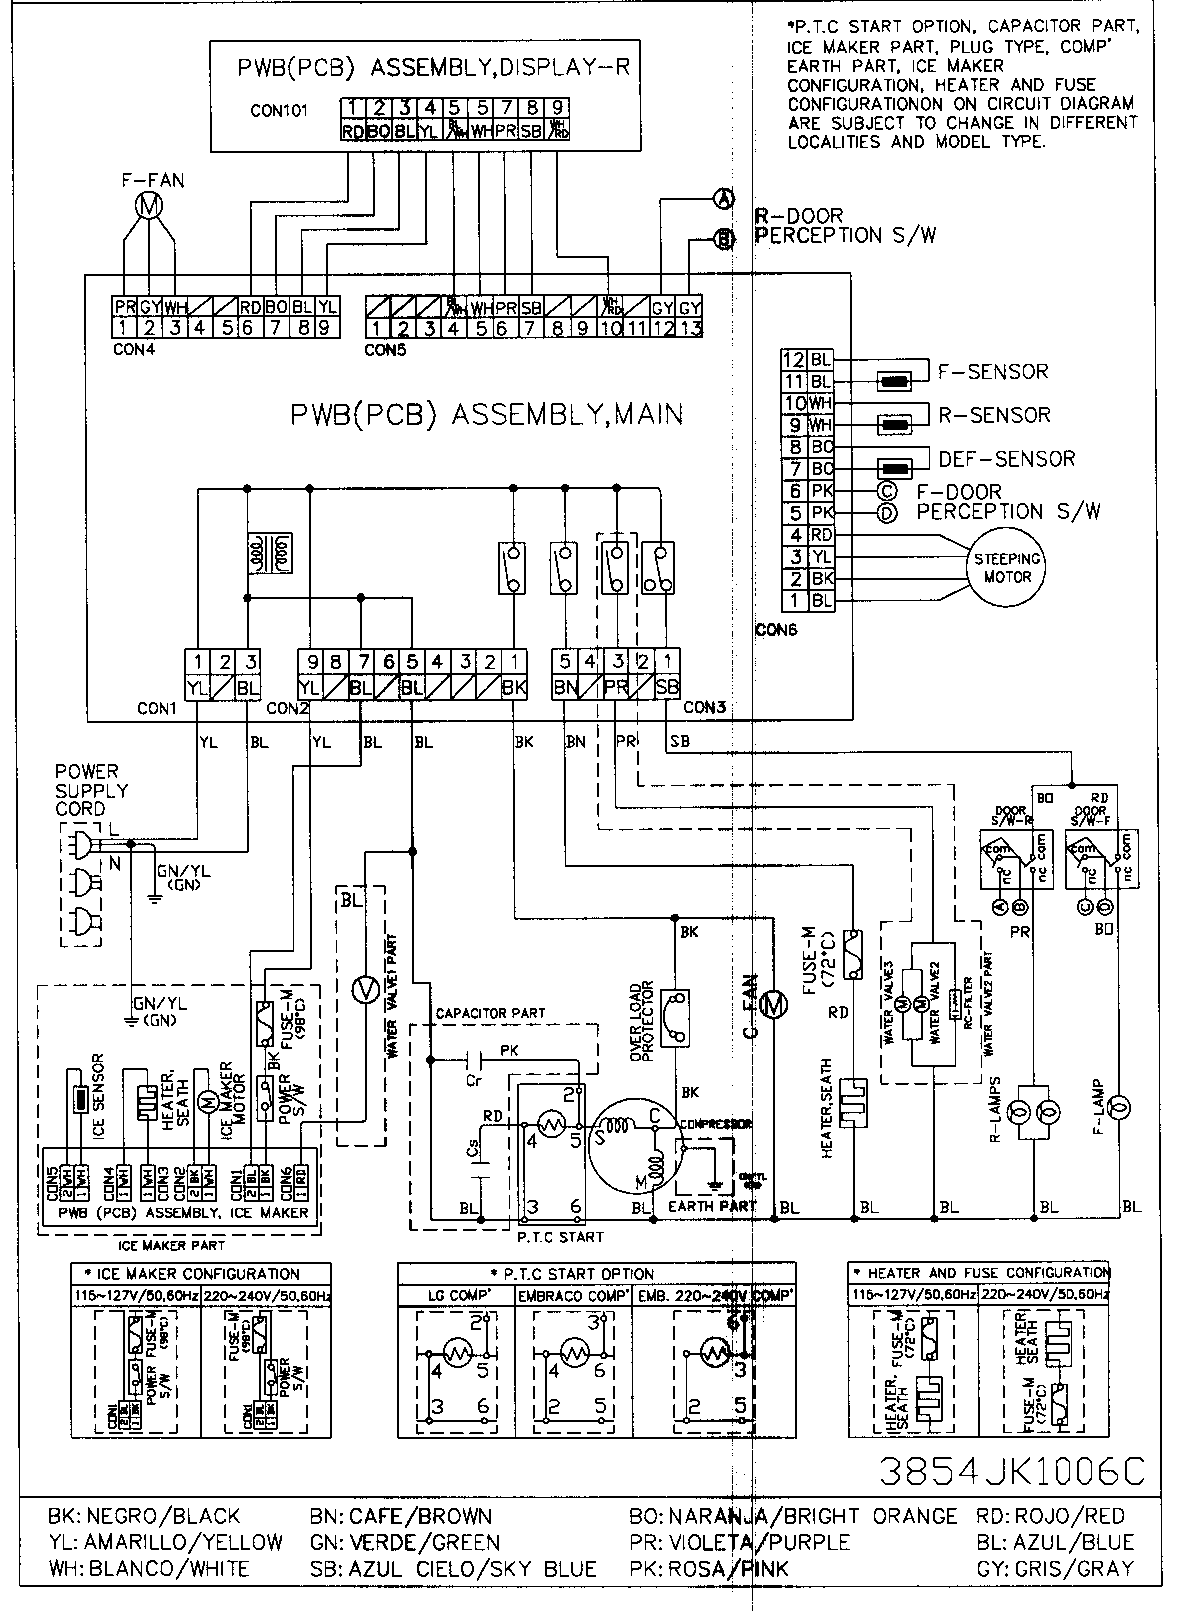 hight resolution of appliance wiring diagram components wiring diagram appliance wiring diagram components